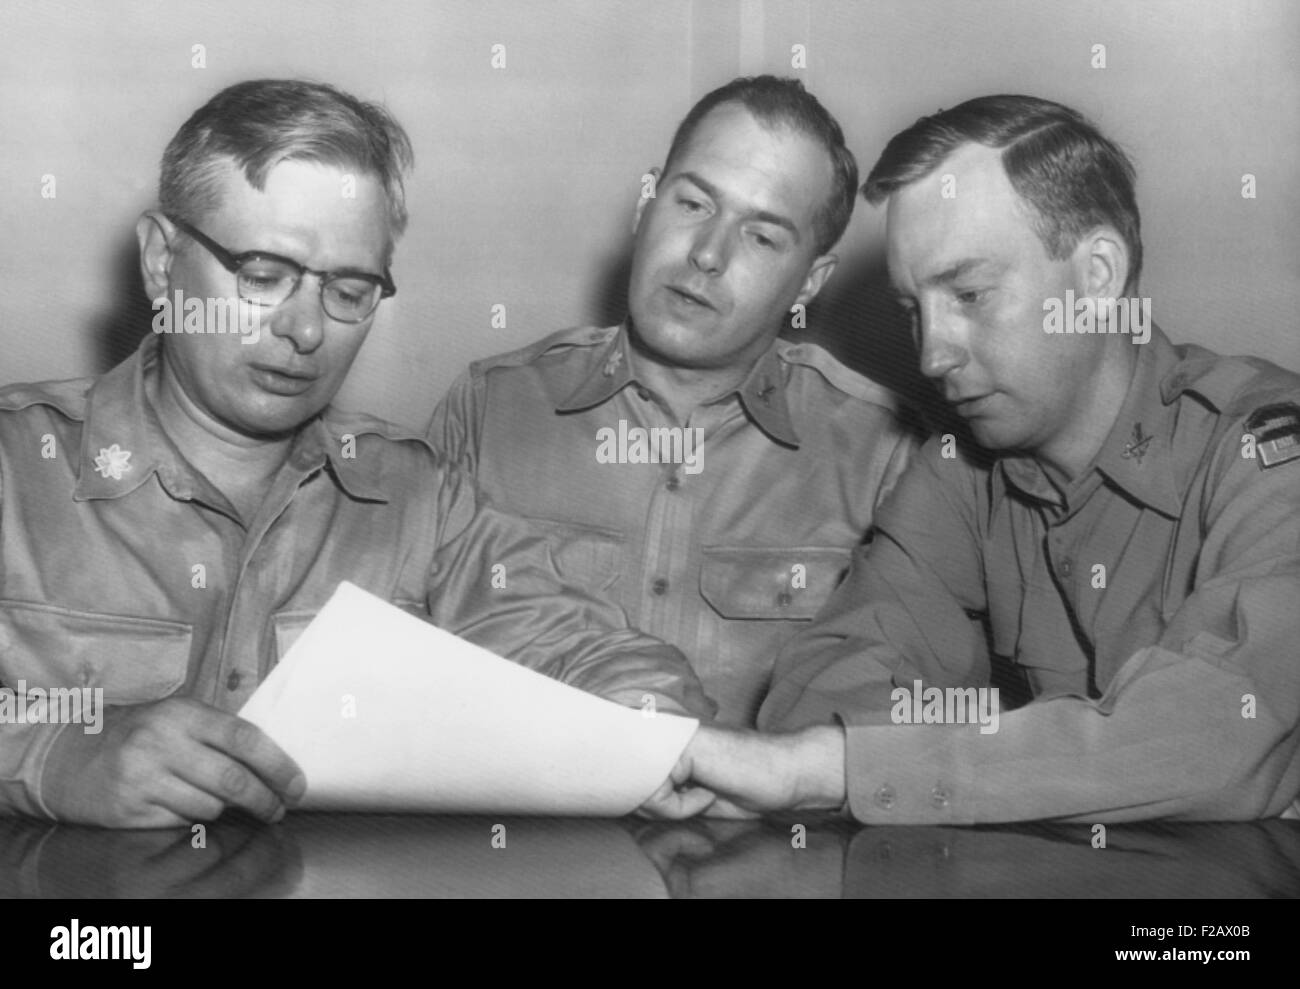 Major Roland E. Alley (center), a 14 year Army veteran, charged misconduct as a Korean War POW. August 22, 1955. - Stock Image